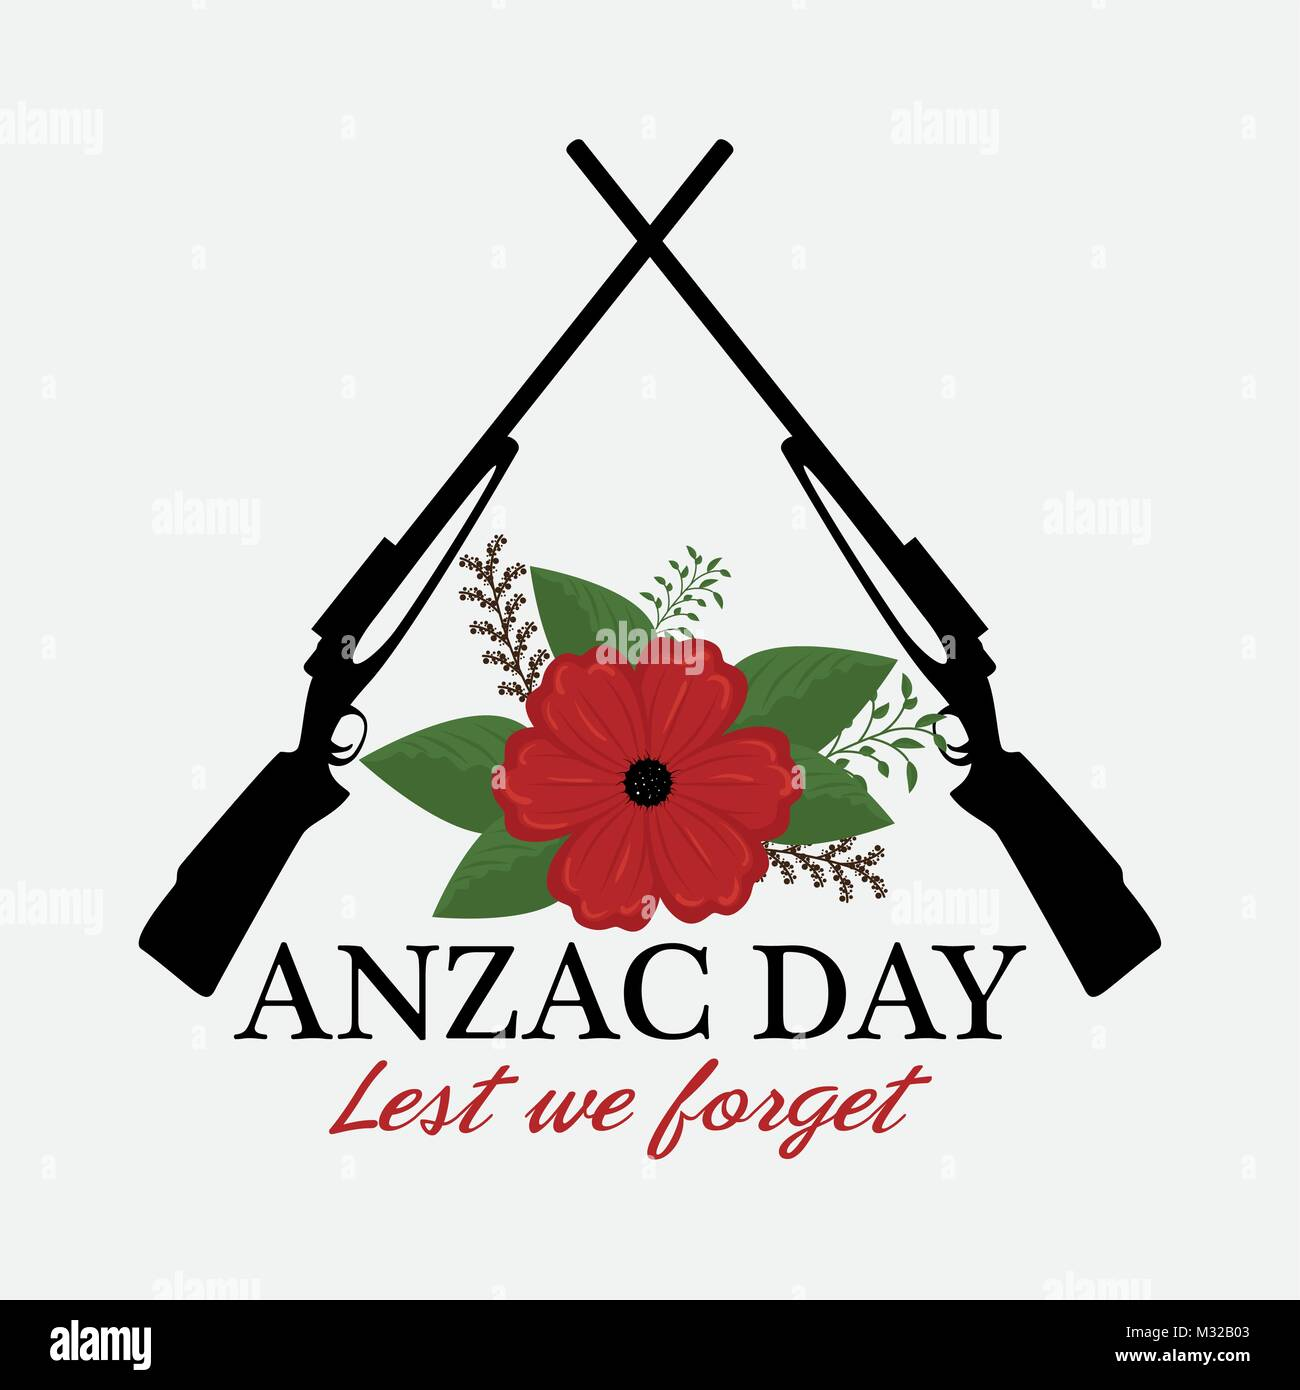 anzac day poster with red poppy flower - Stock Vector